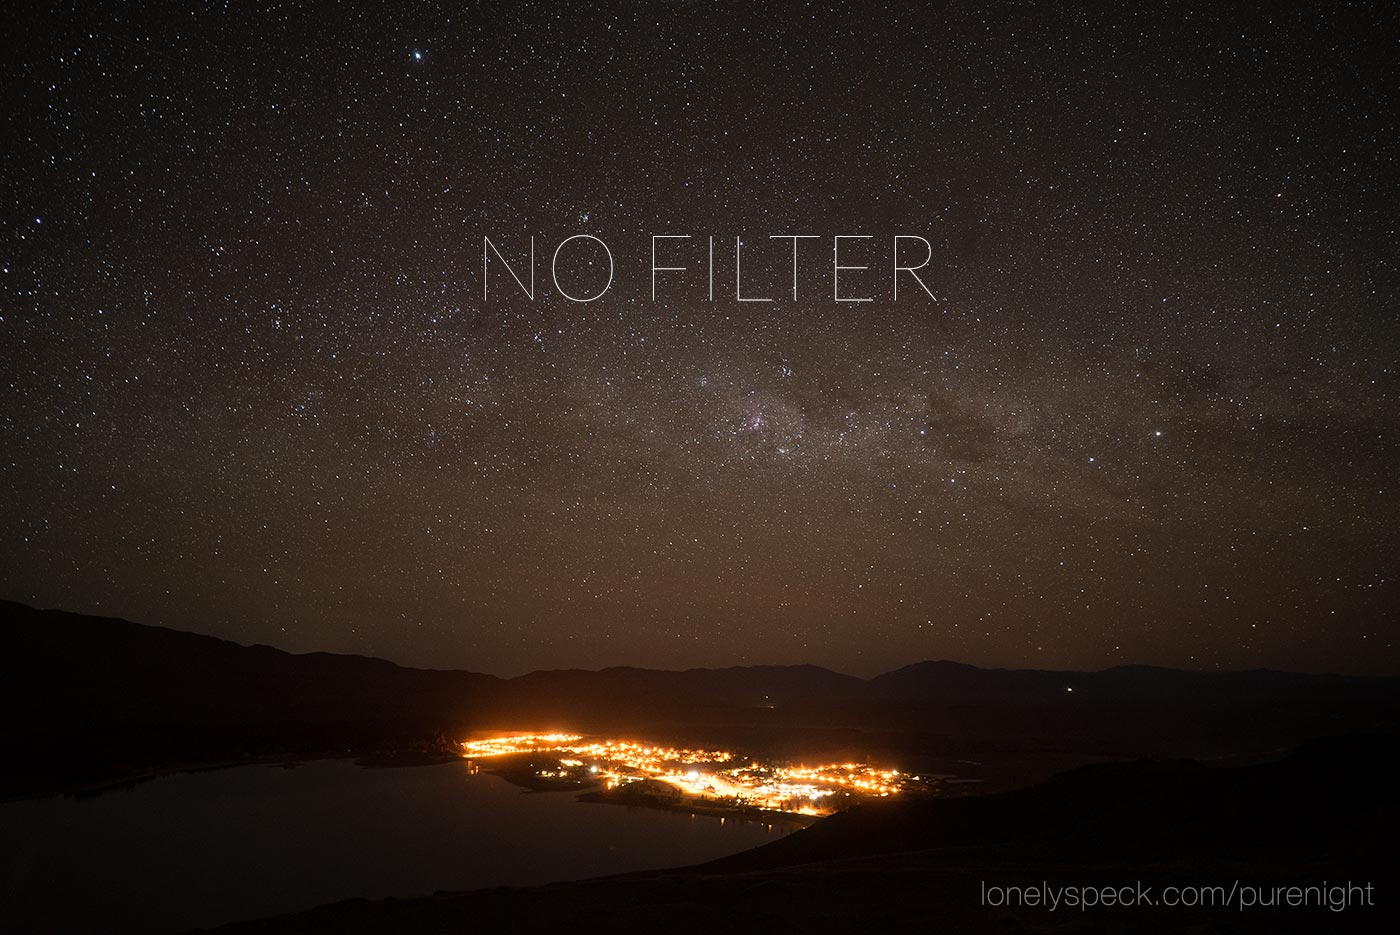 Lonely Speck PureNight Light Pollution Reduction Filter Example Without Filter